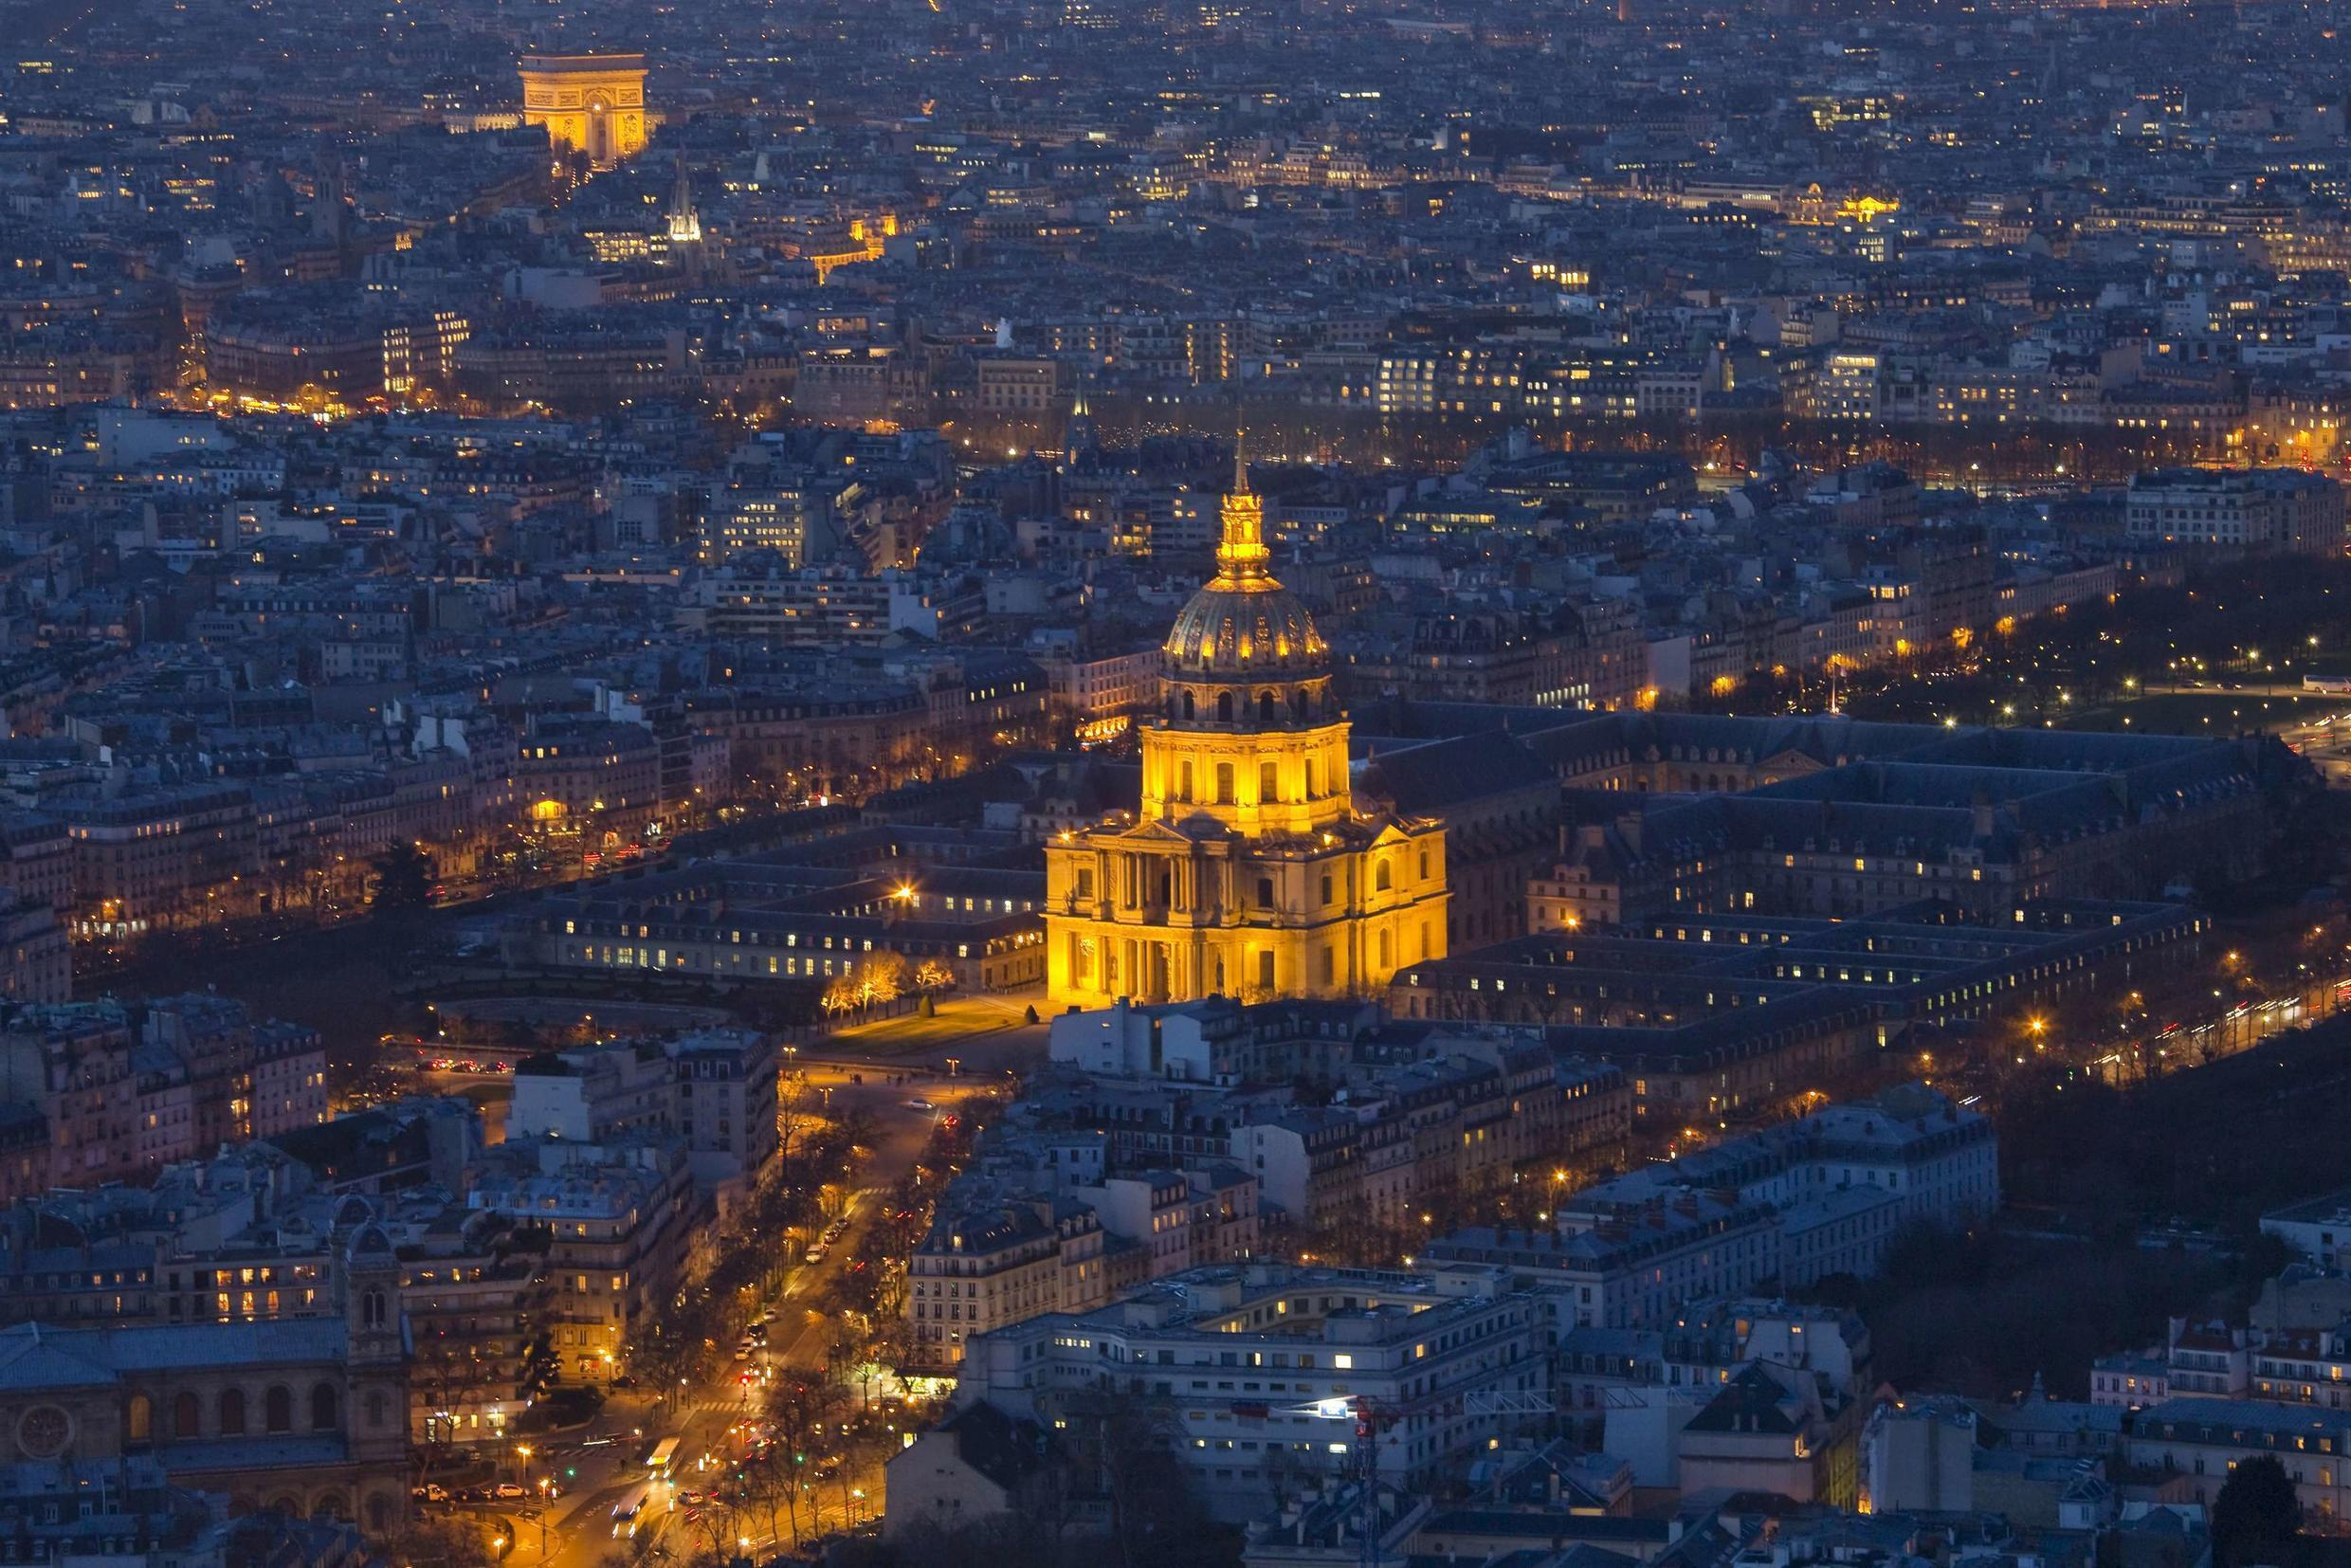 The Invalides, which has been overflown by drones repeatedly, and the Arc de Triomphe in Paris